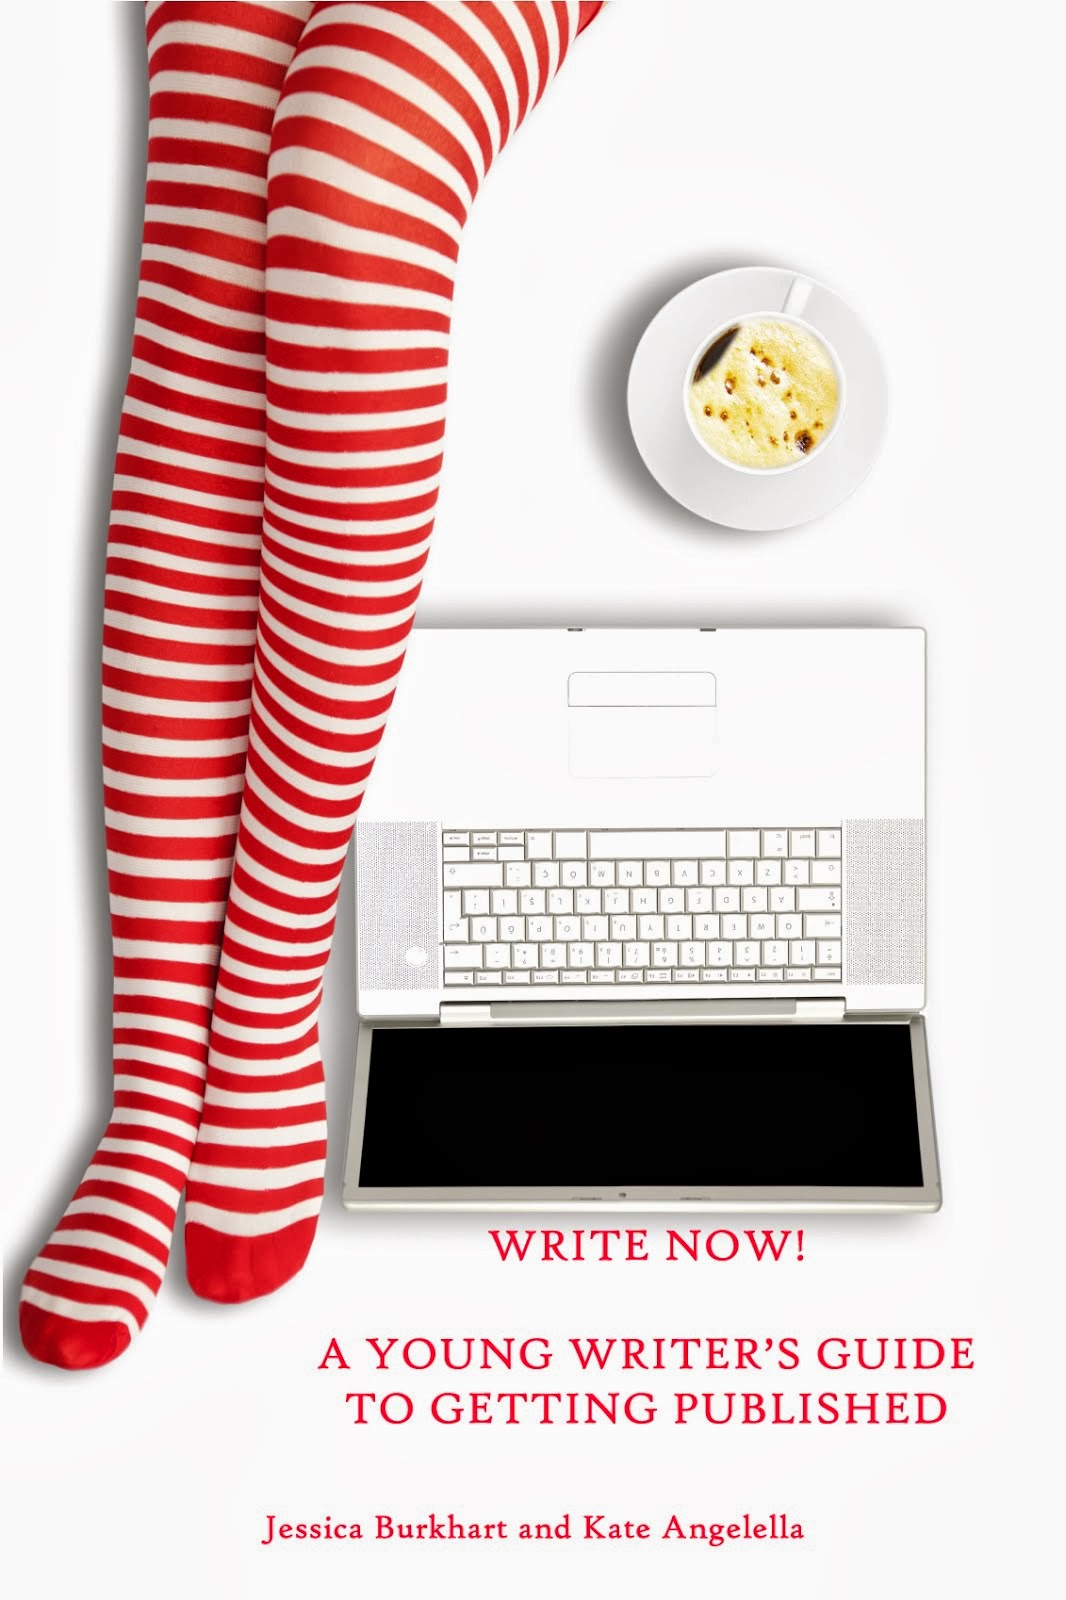 WRITE NOW! A YOUNG WRITER'S GUIDE TO GETTING PUBLISHED